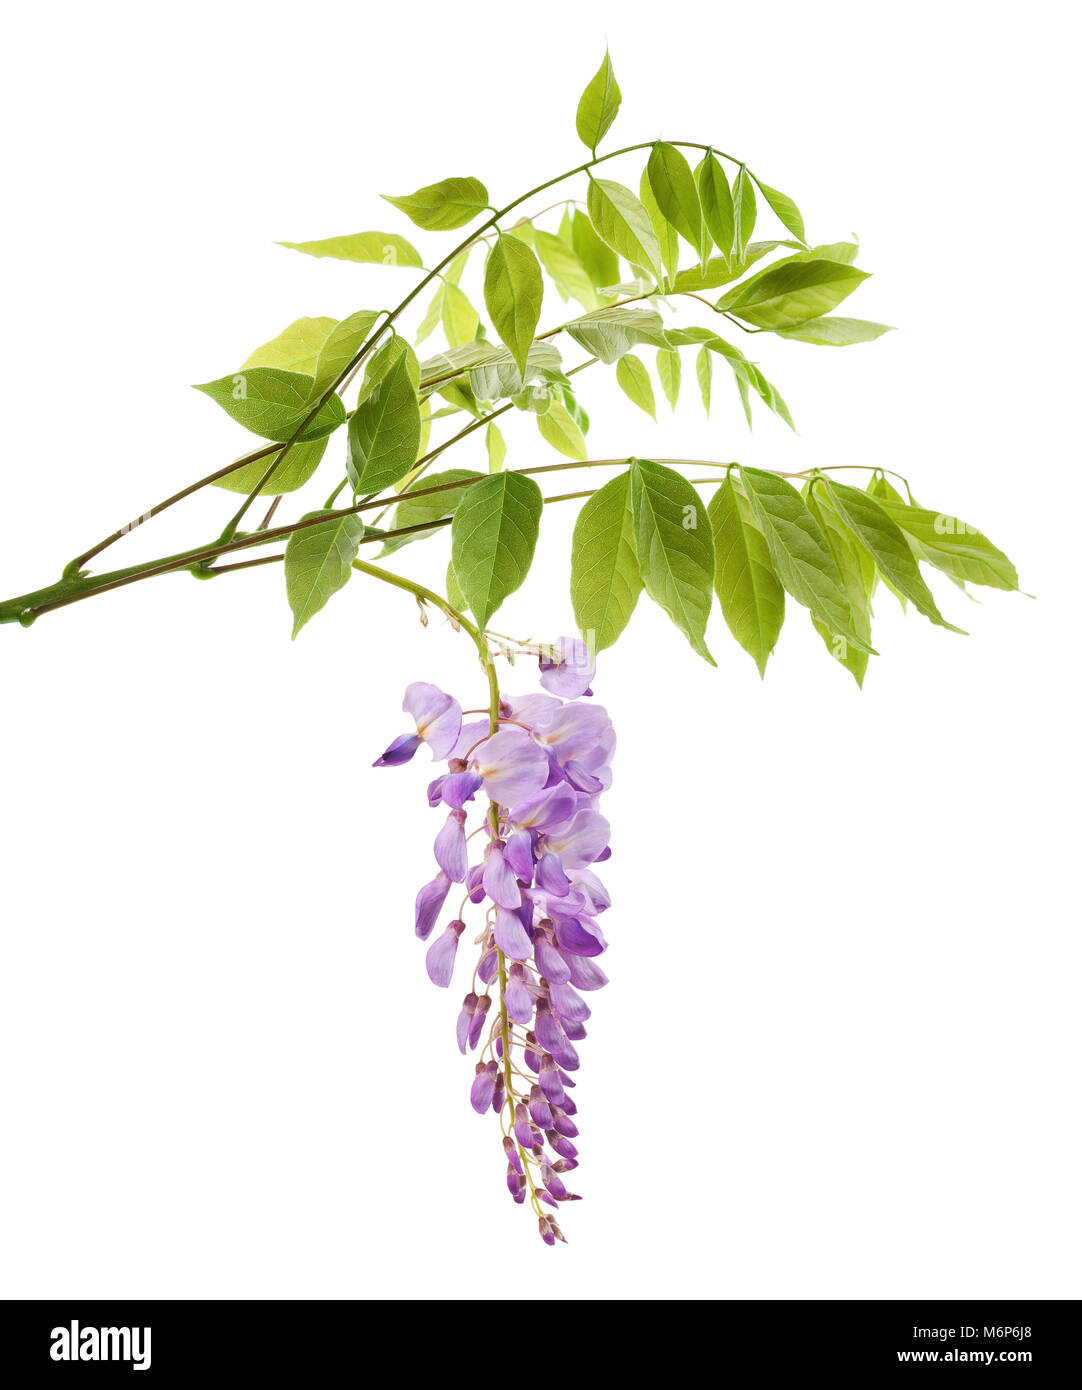 wisteria branch with flowers isolated on white - Stock Image